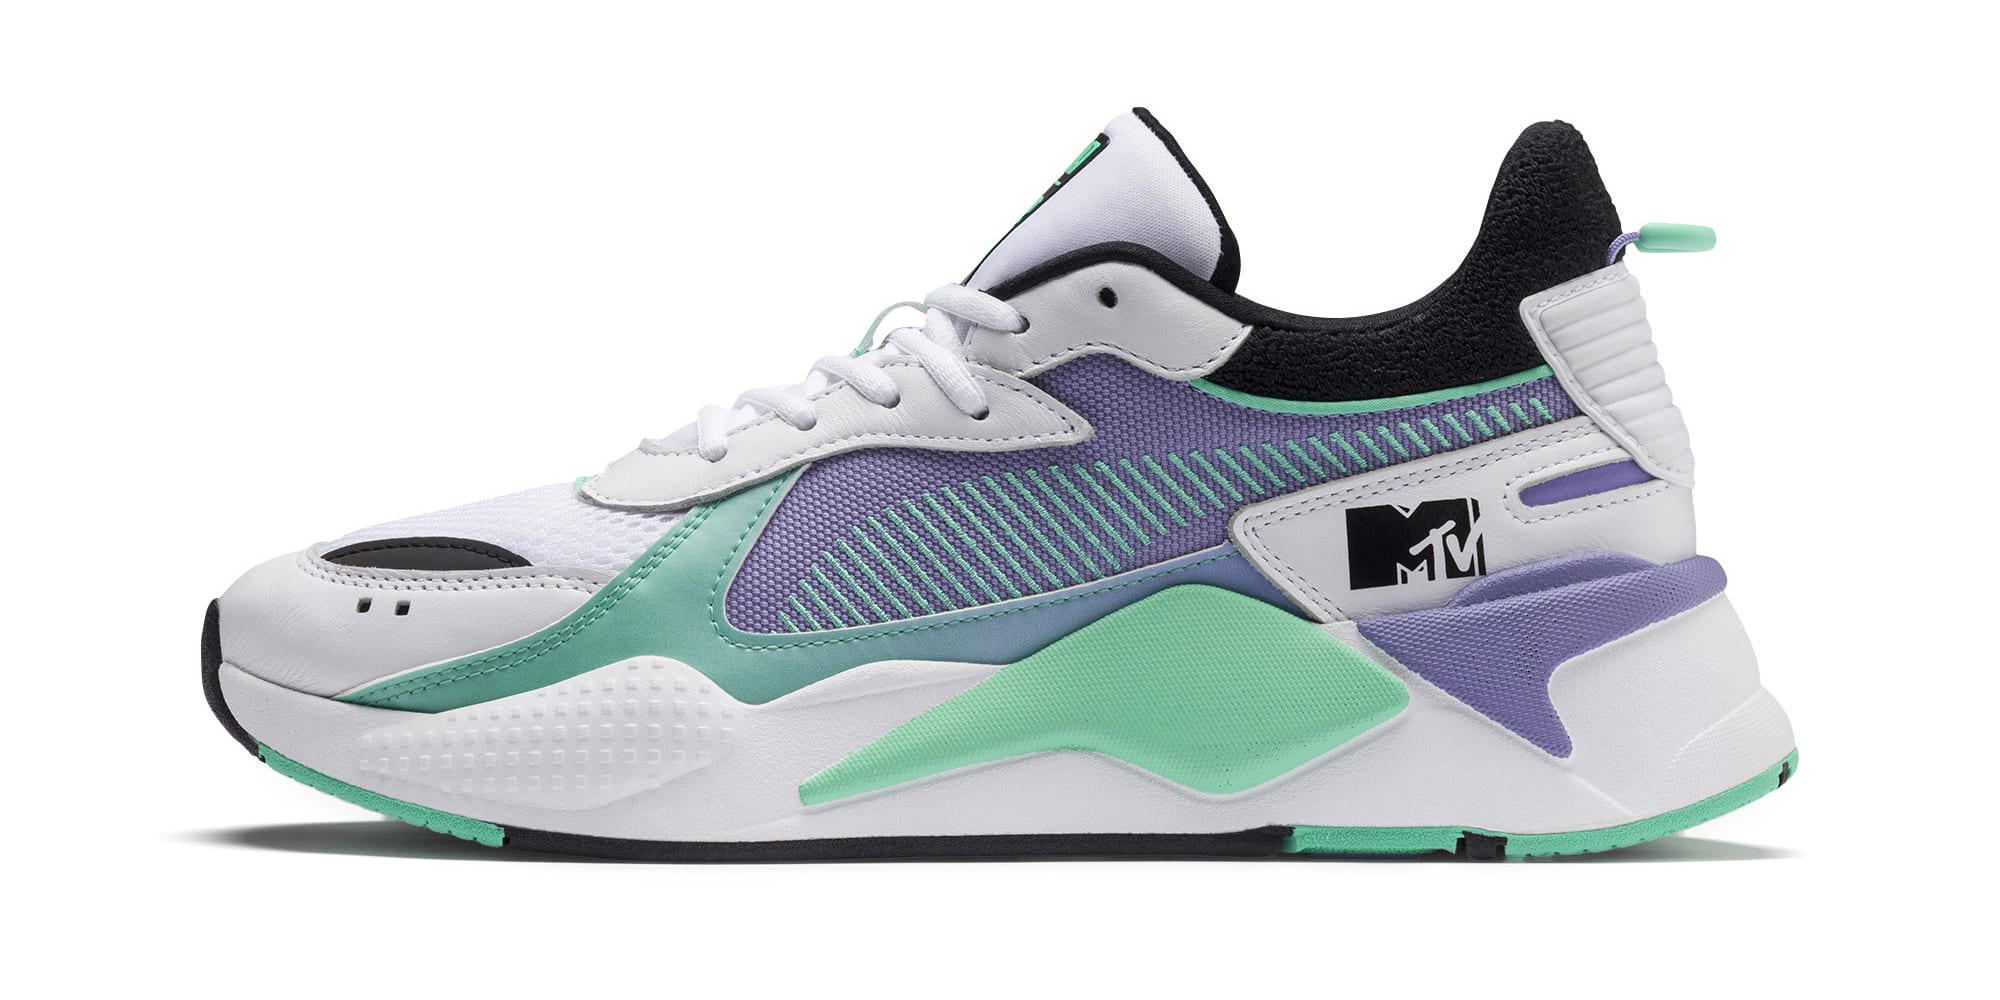 MTV x Puma RS-X 'Puma White/Sweet Lavender' 370407-01 (Lateral)